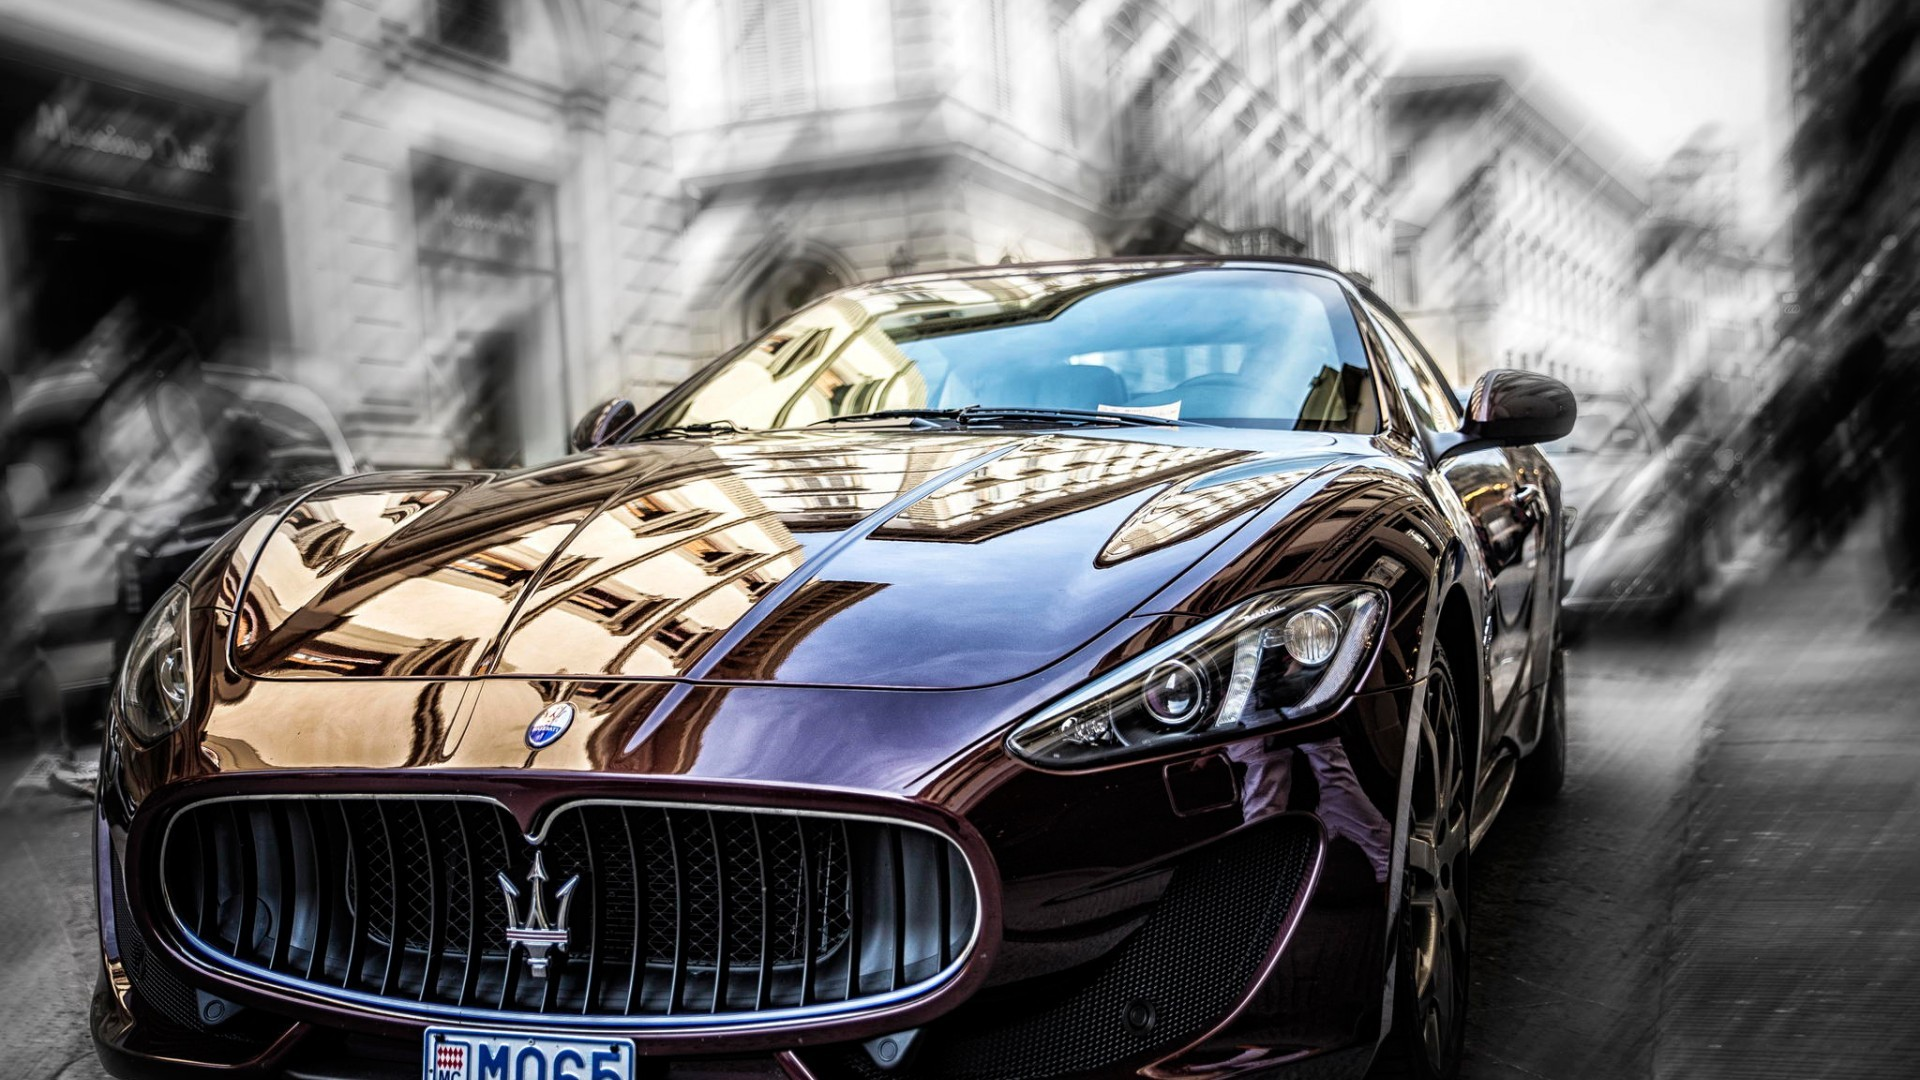 Super Car 5760x1080 Wallpaper Car Maserati Mc Stradale Maserati Granturismo Coupe